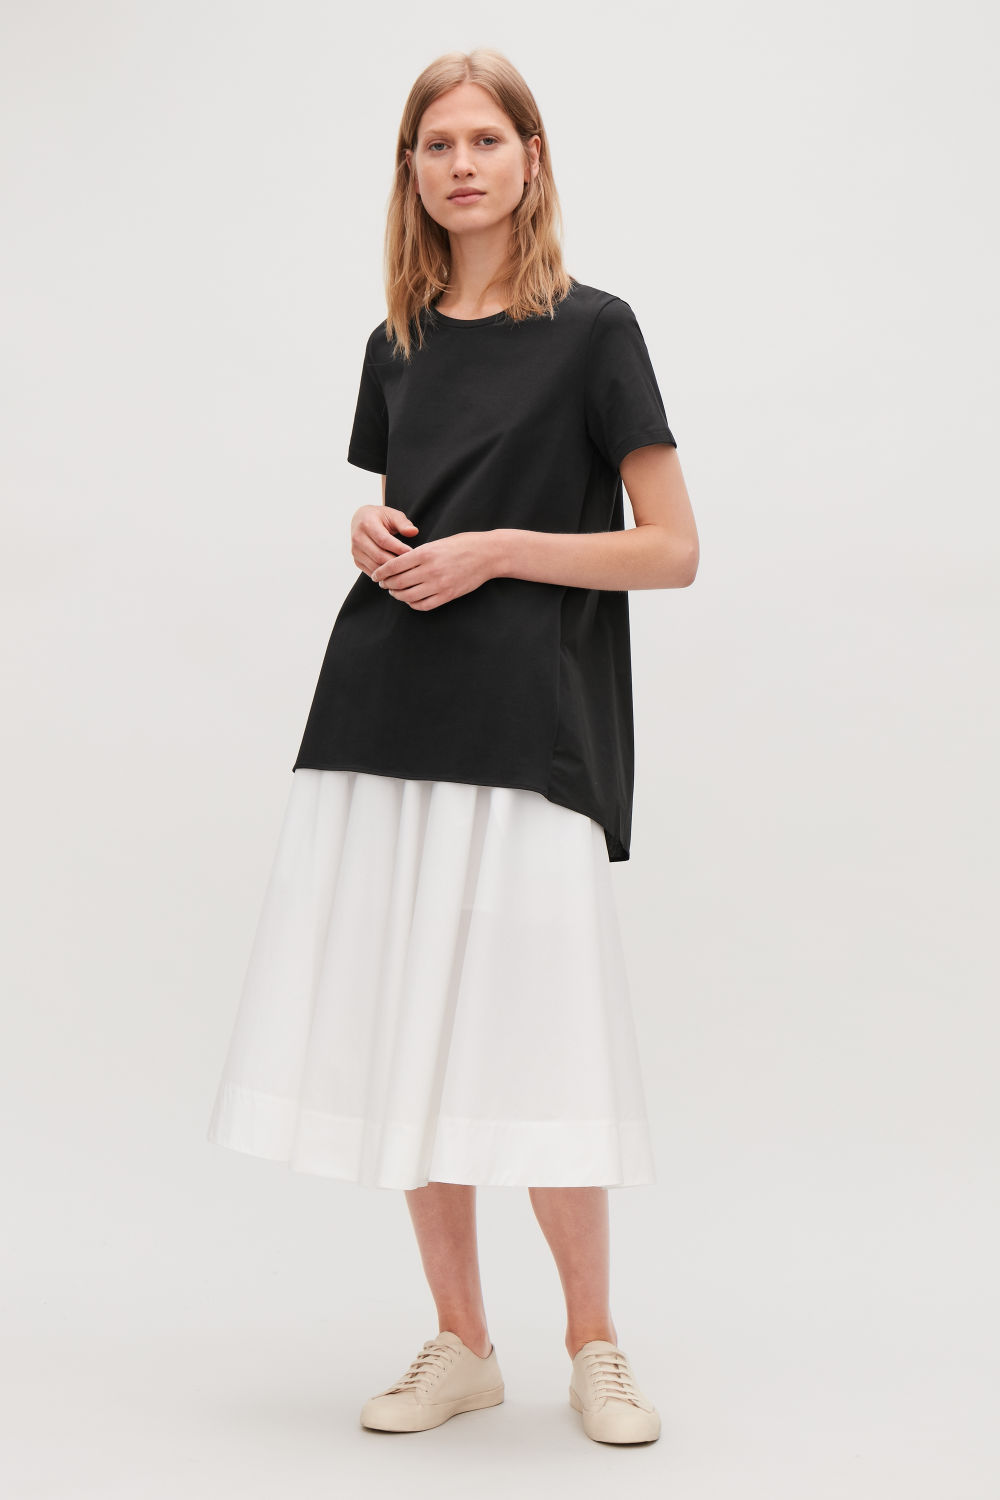 SHORT-SLEEVED A-LINE TOP